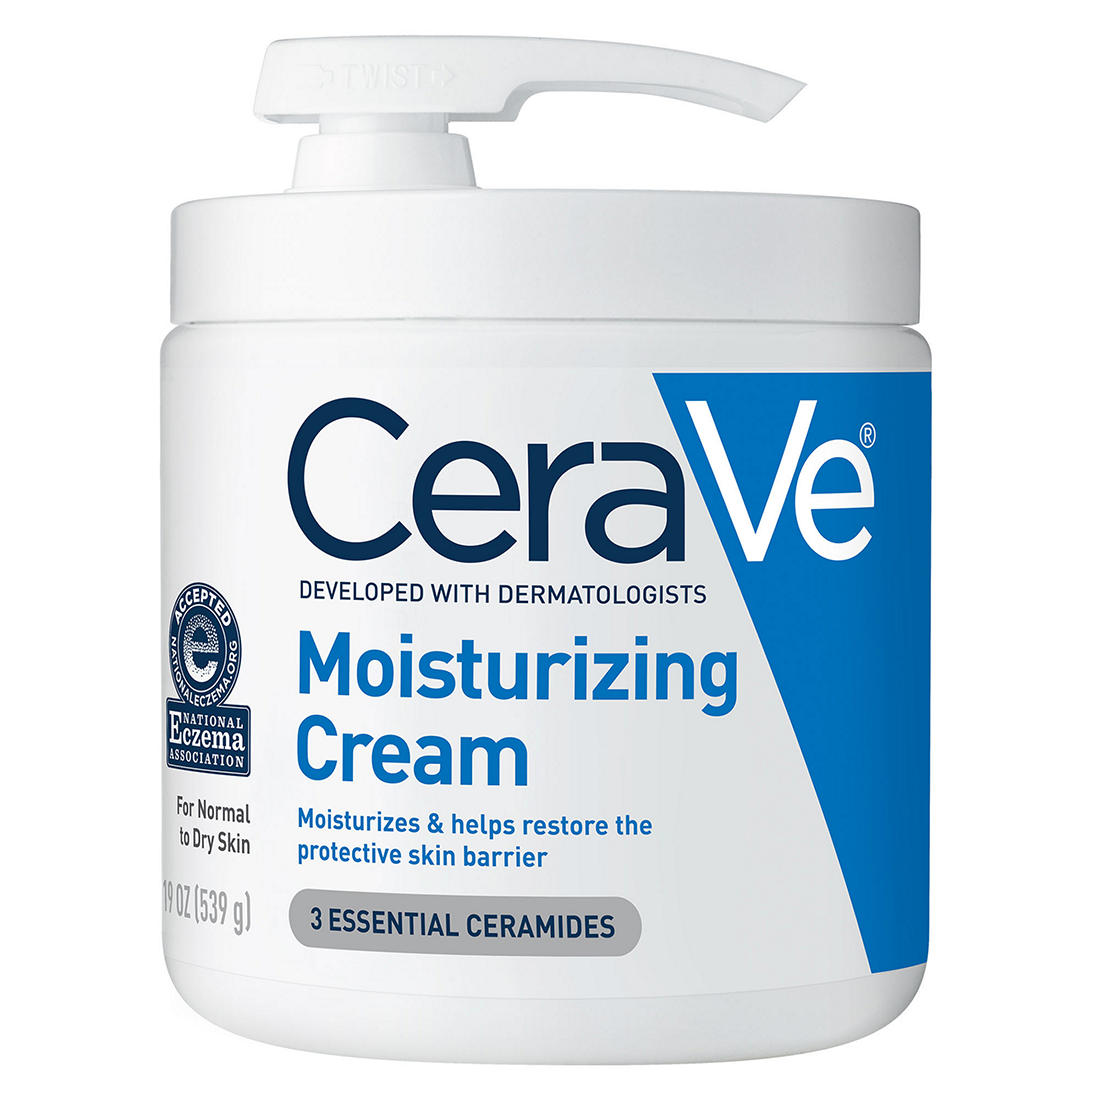 photo relating to Cerave Printable Coupon identified as CeraVe Moisturizing Product, 19 oz.